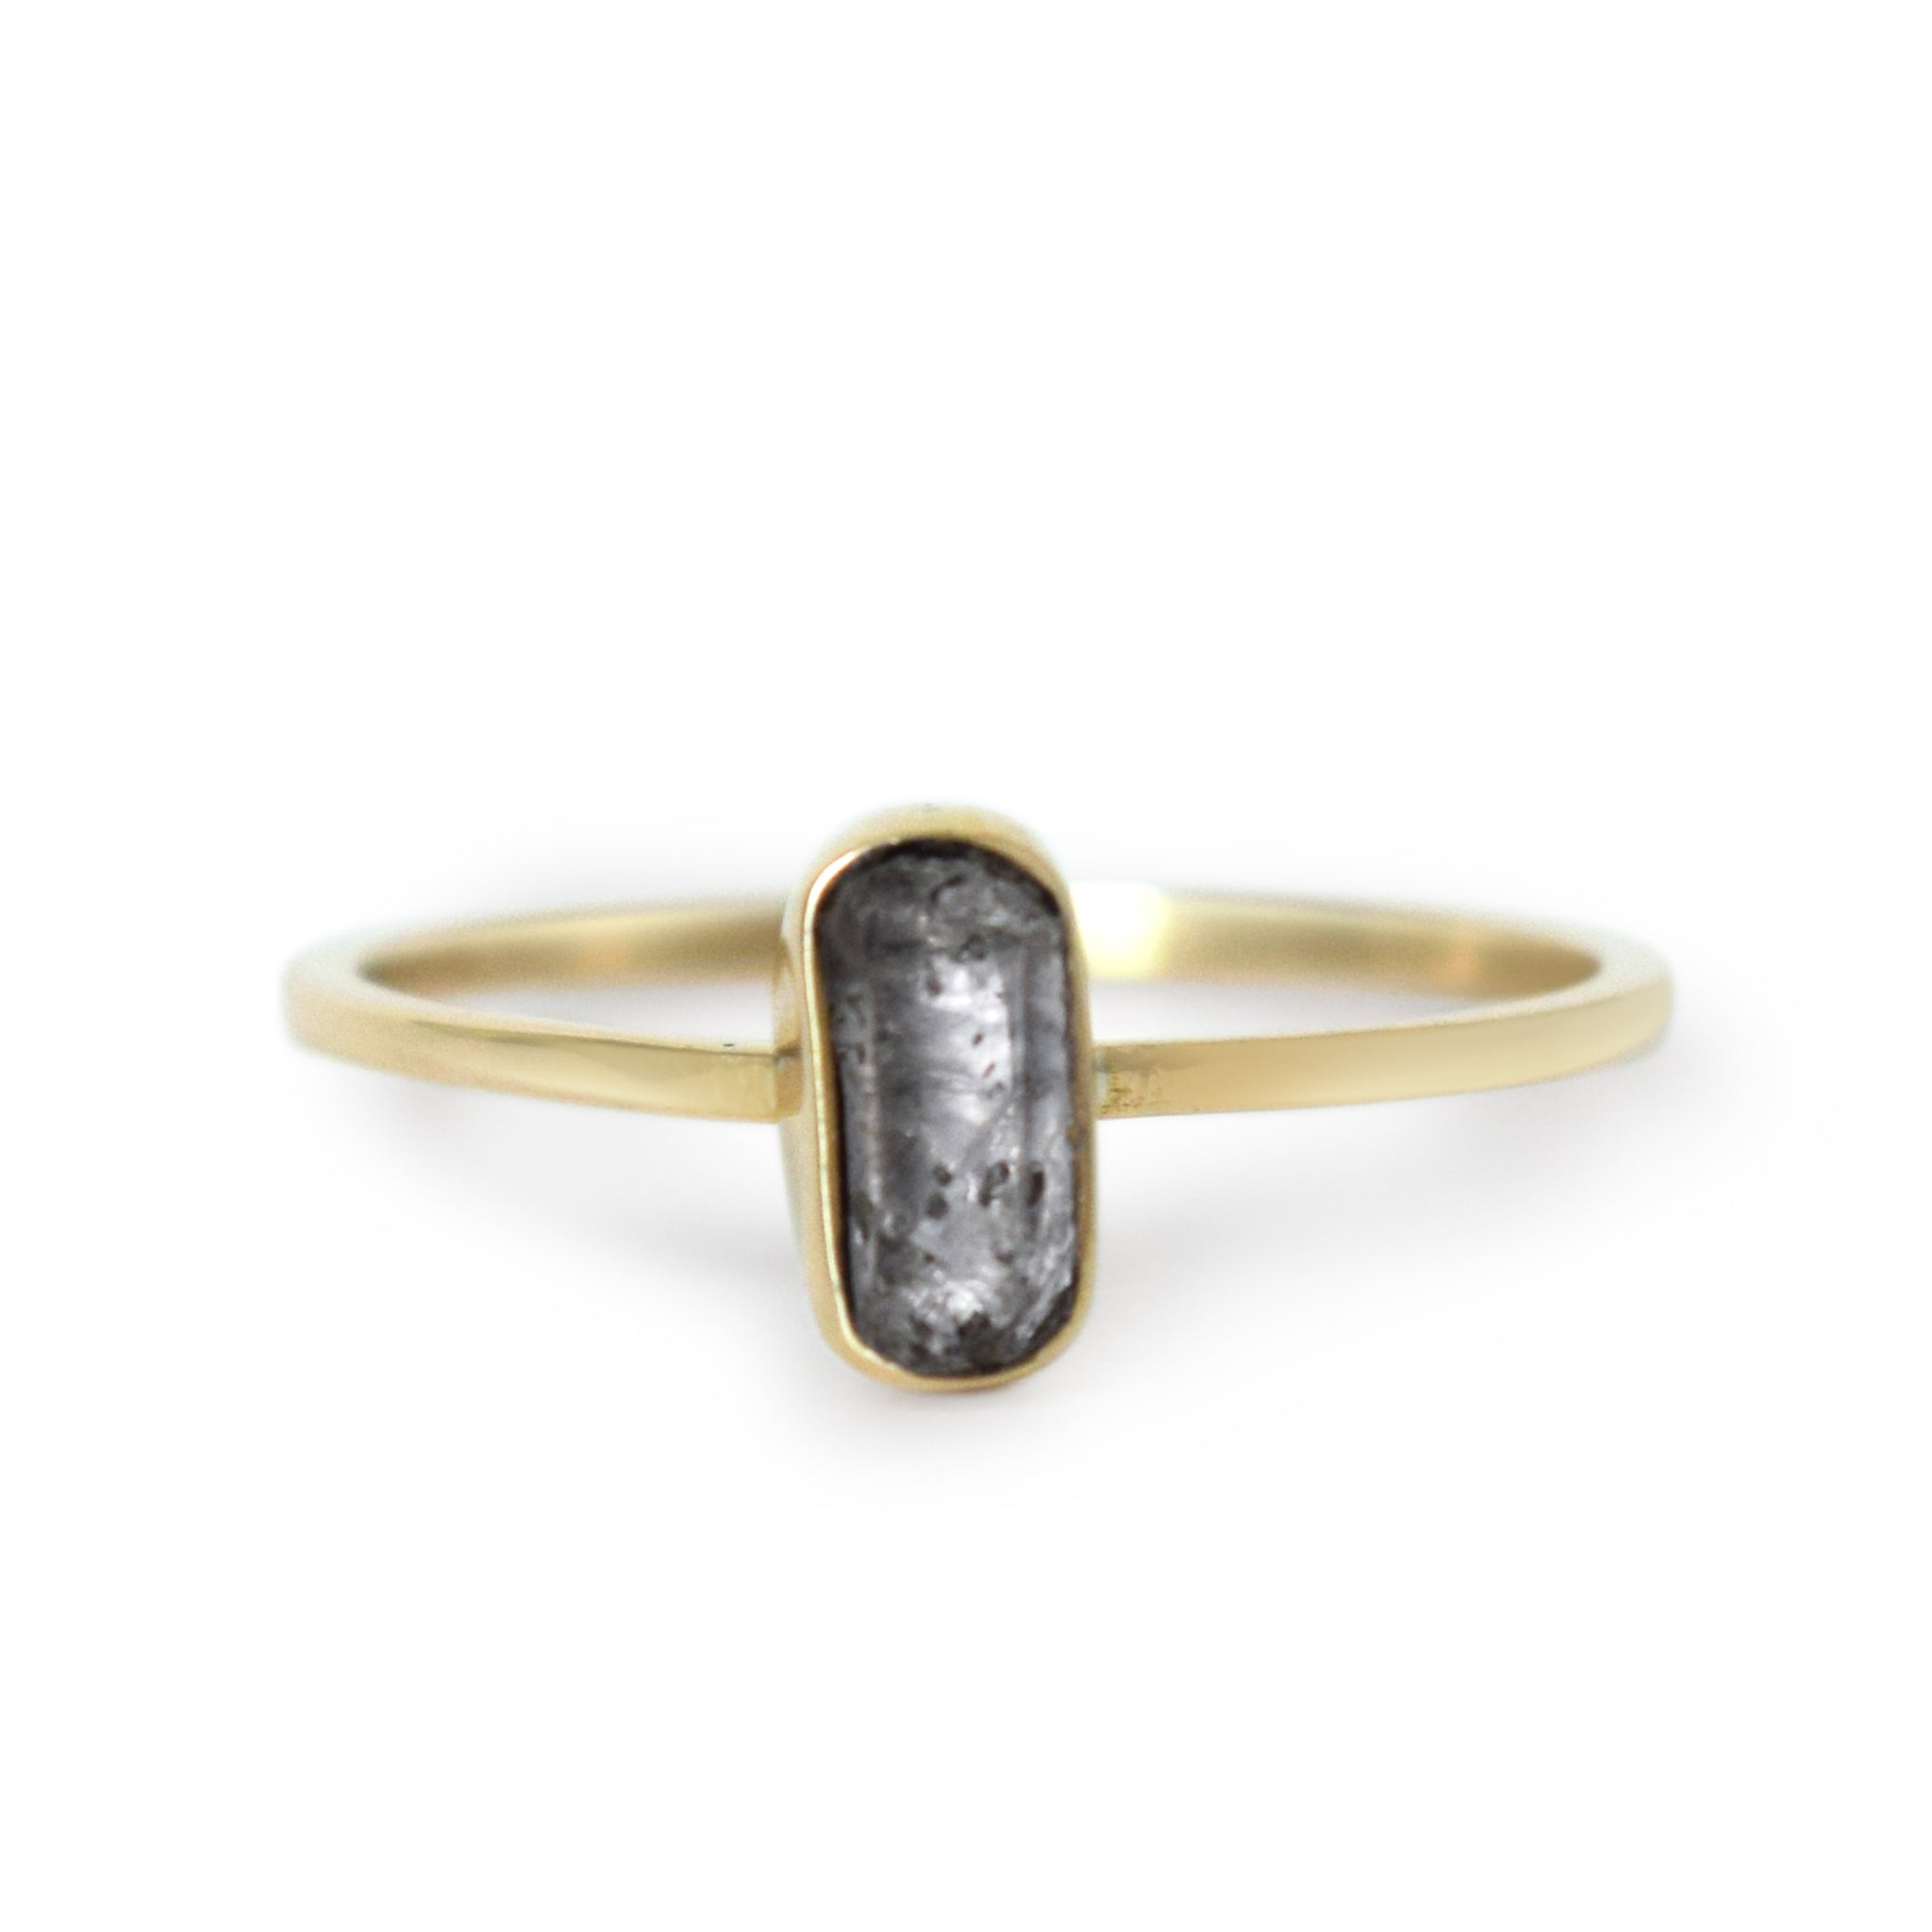 Jackie Stone Stacking Ring - Lissa Bowie